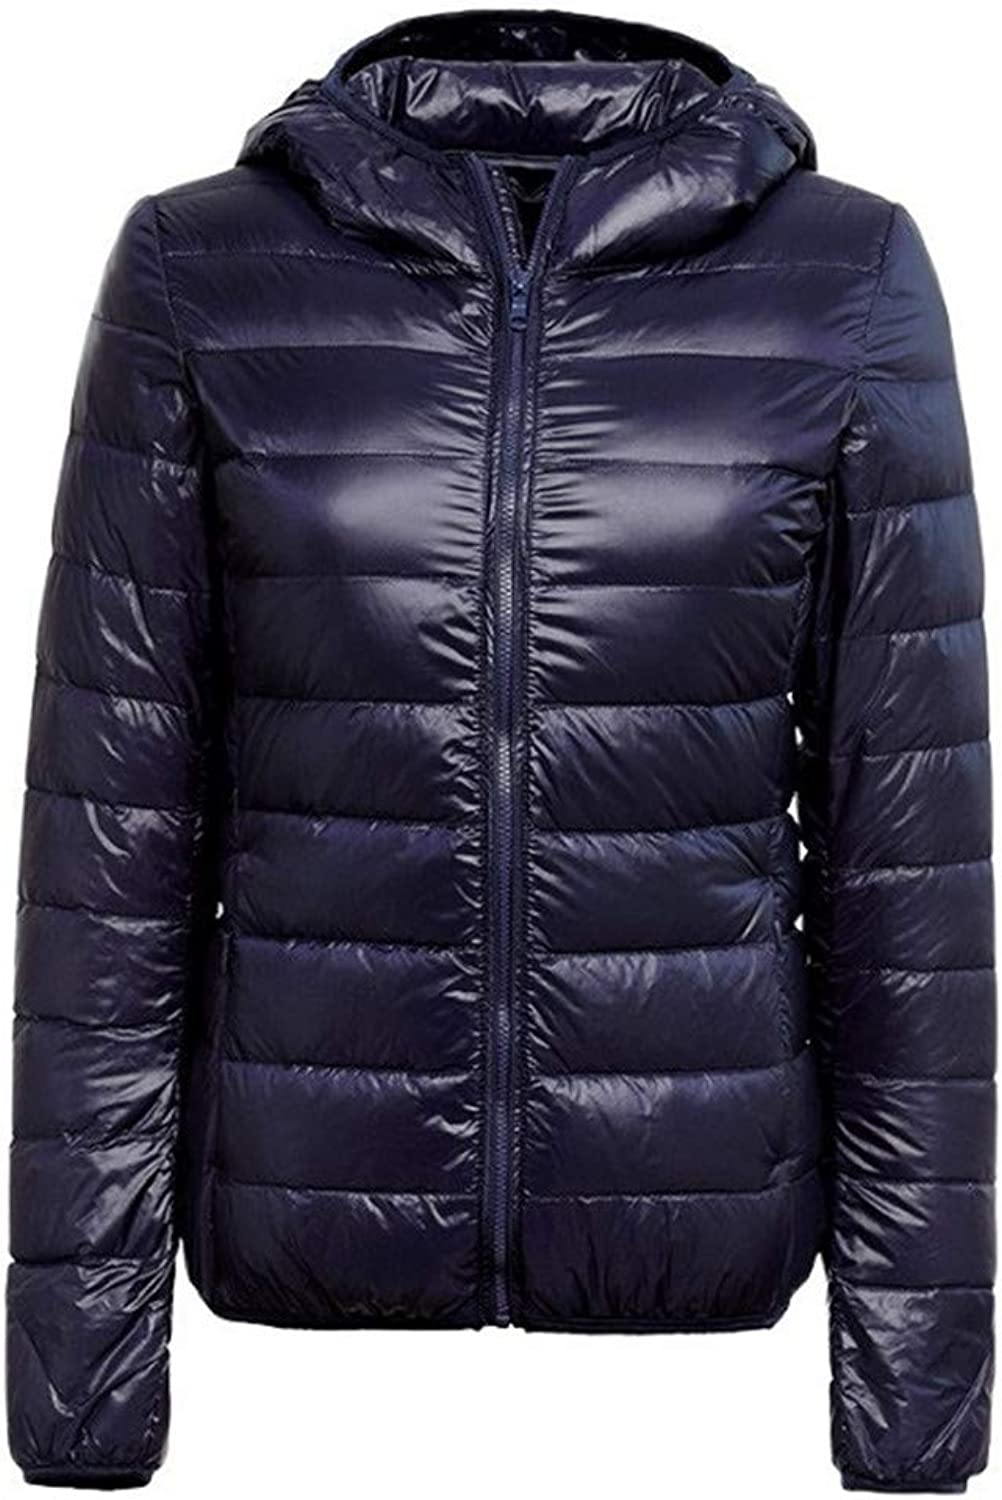 Aehoor Winter Down Jacket Womens UltraLight 90% Duck Down Coat Jacket Jacket Hooded